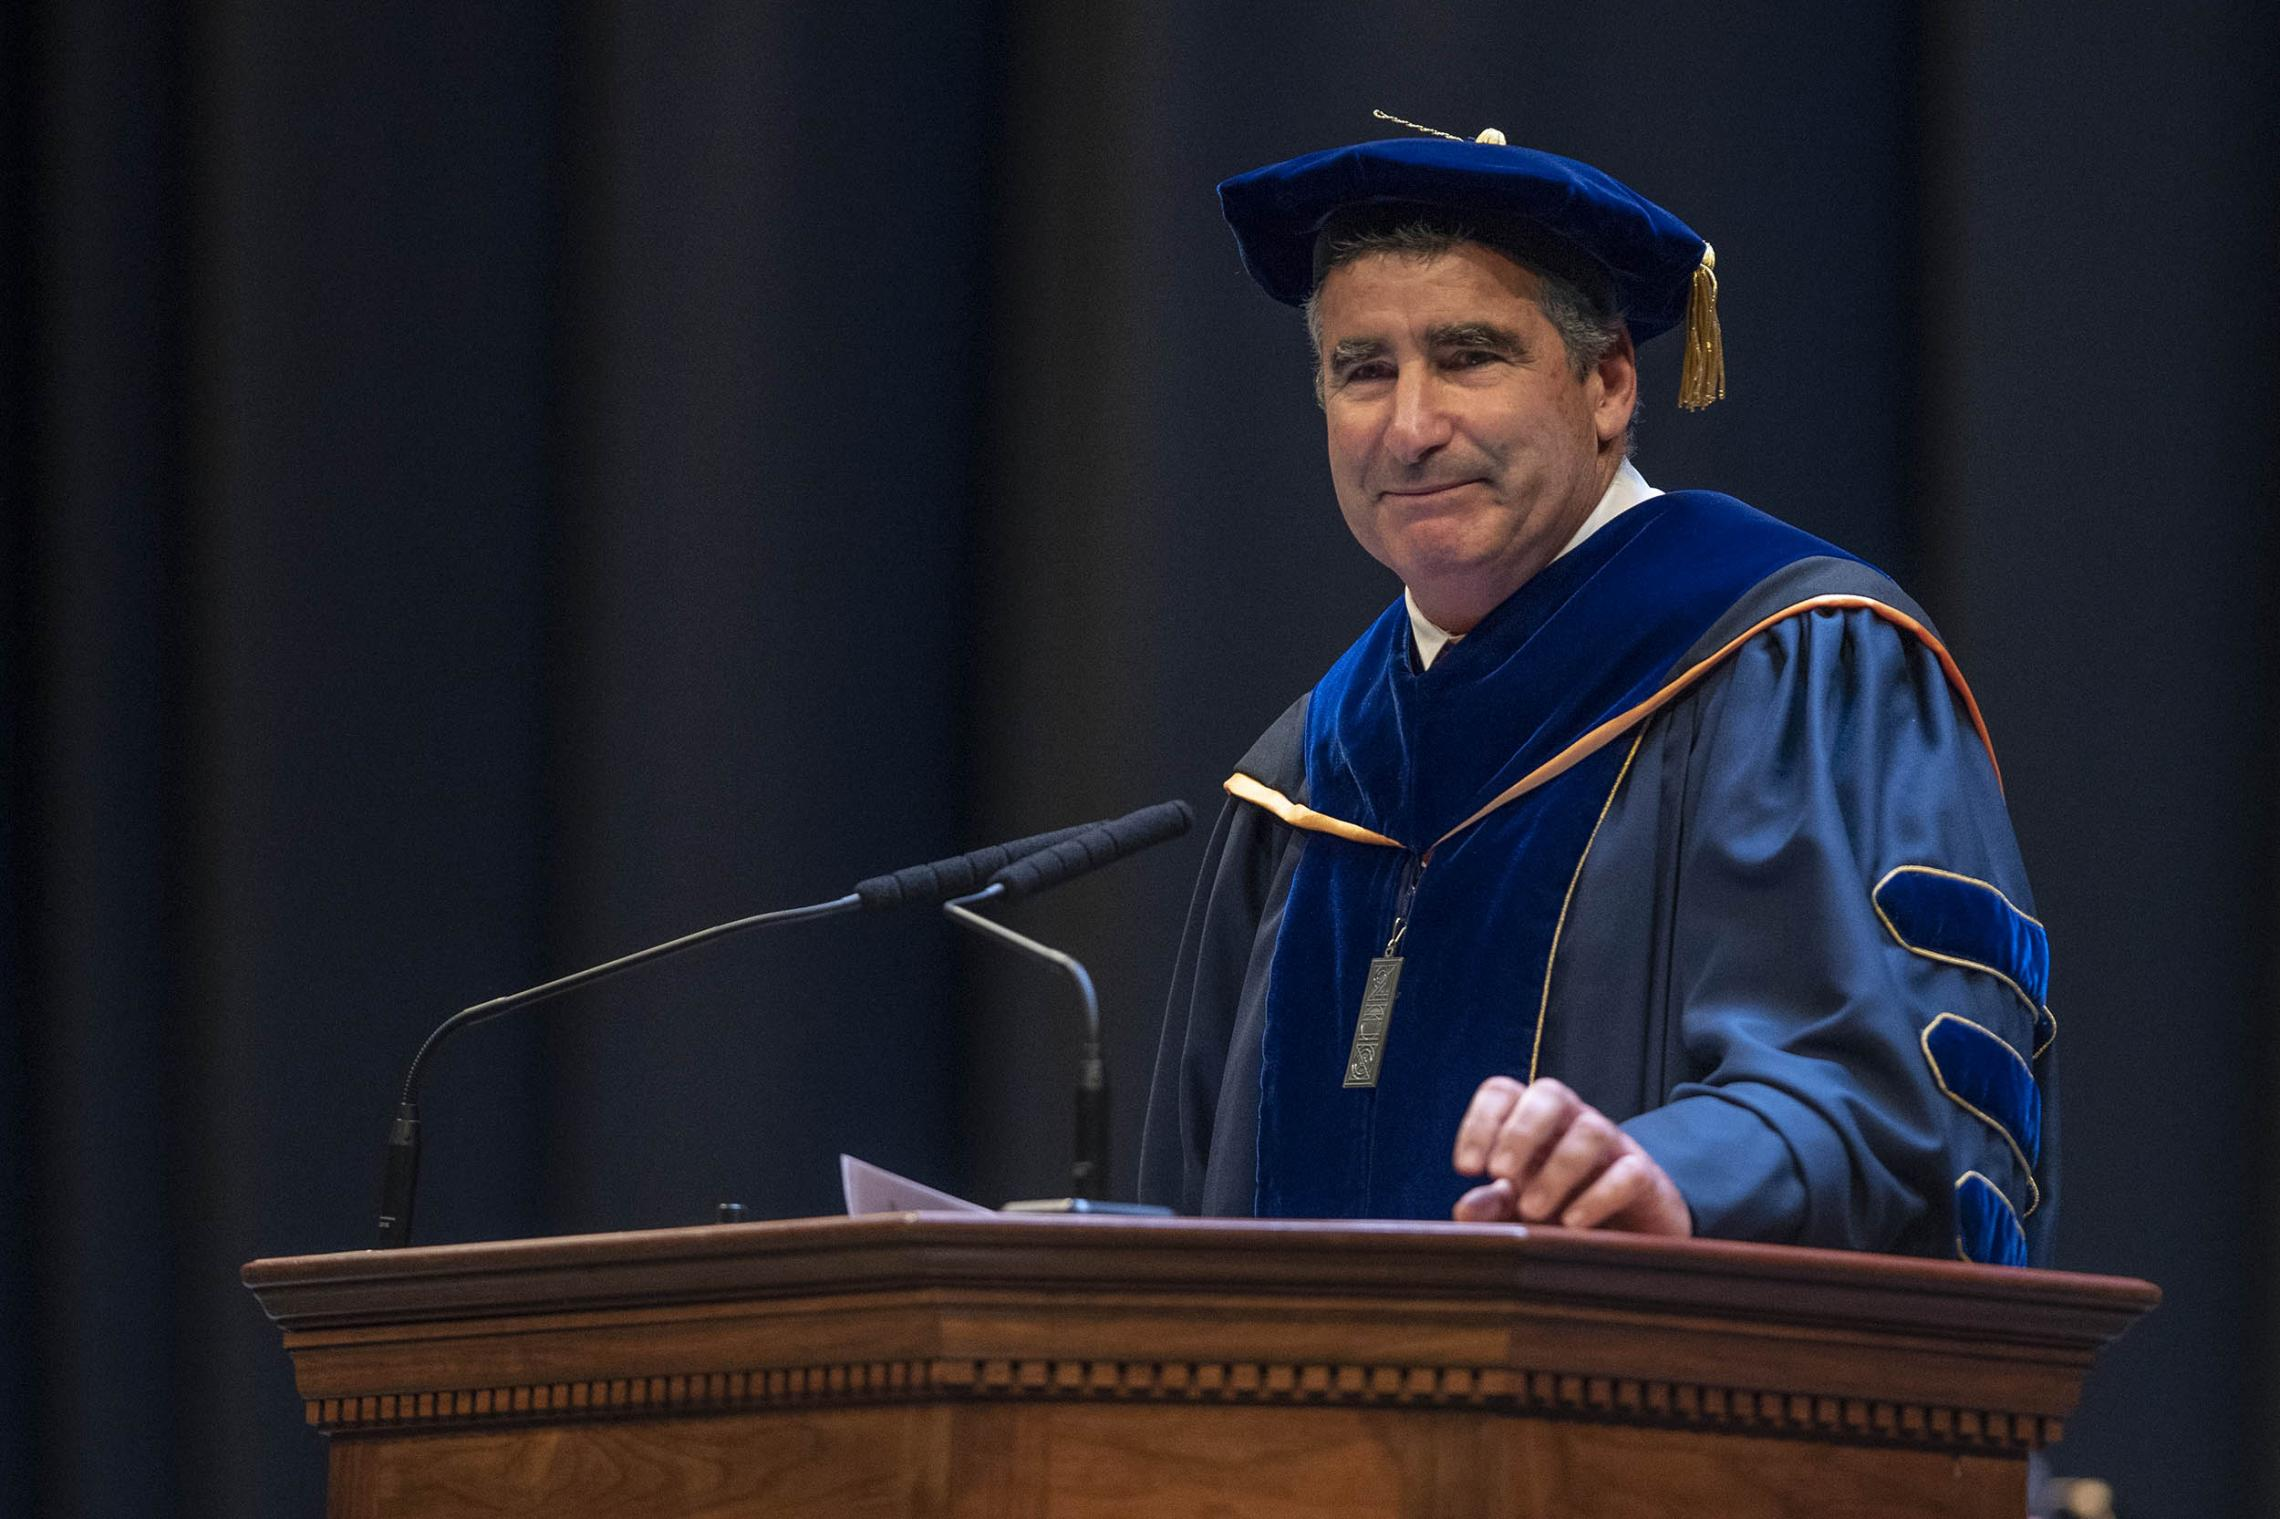 Thomas Katsouleas, UVA's executive vice president and provost, urged students to push beyond their classroom education to seek meaning and happiness in their lives.